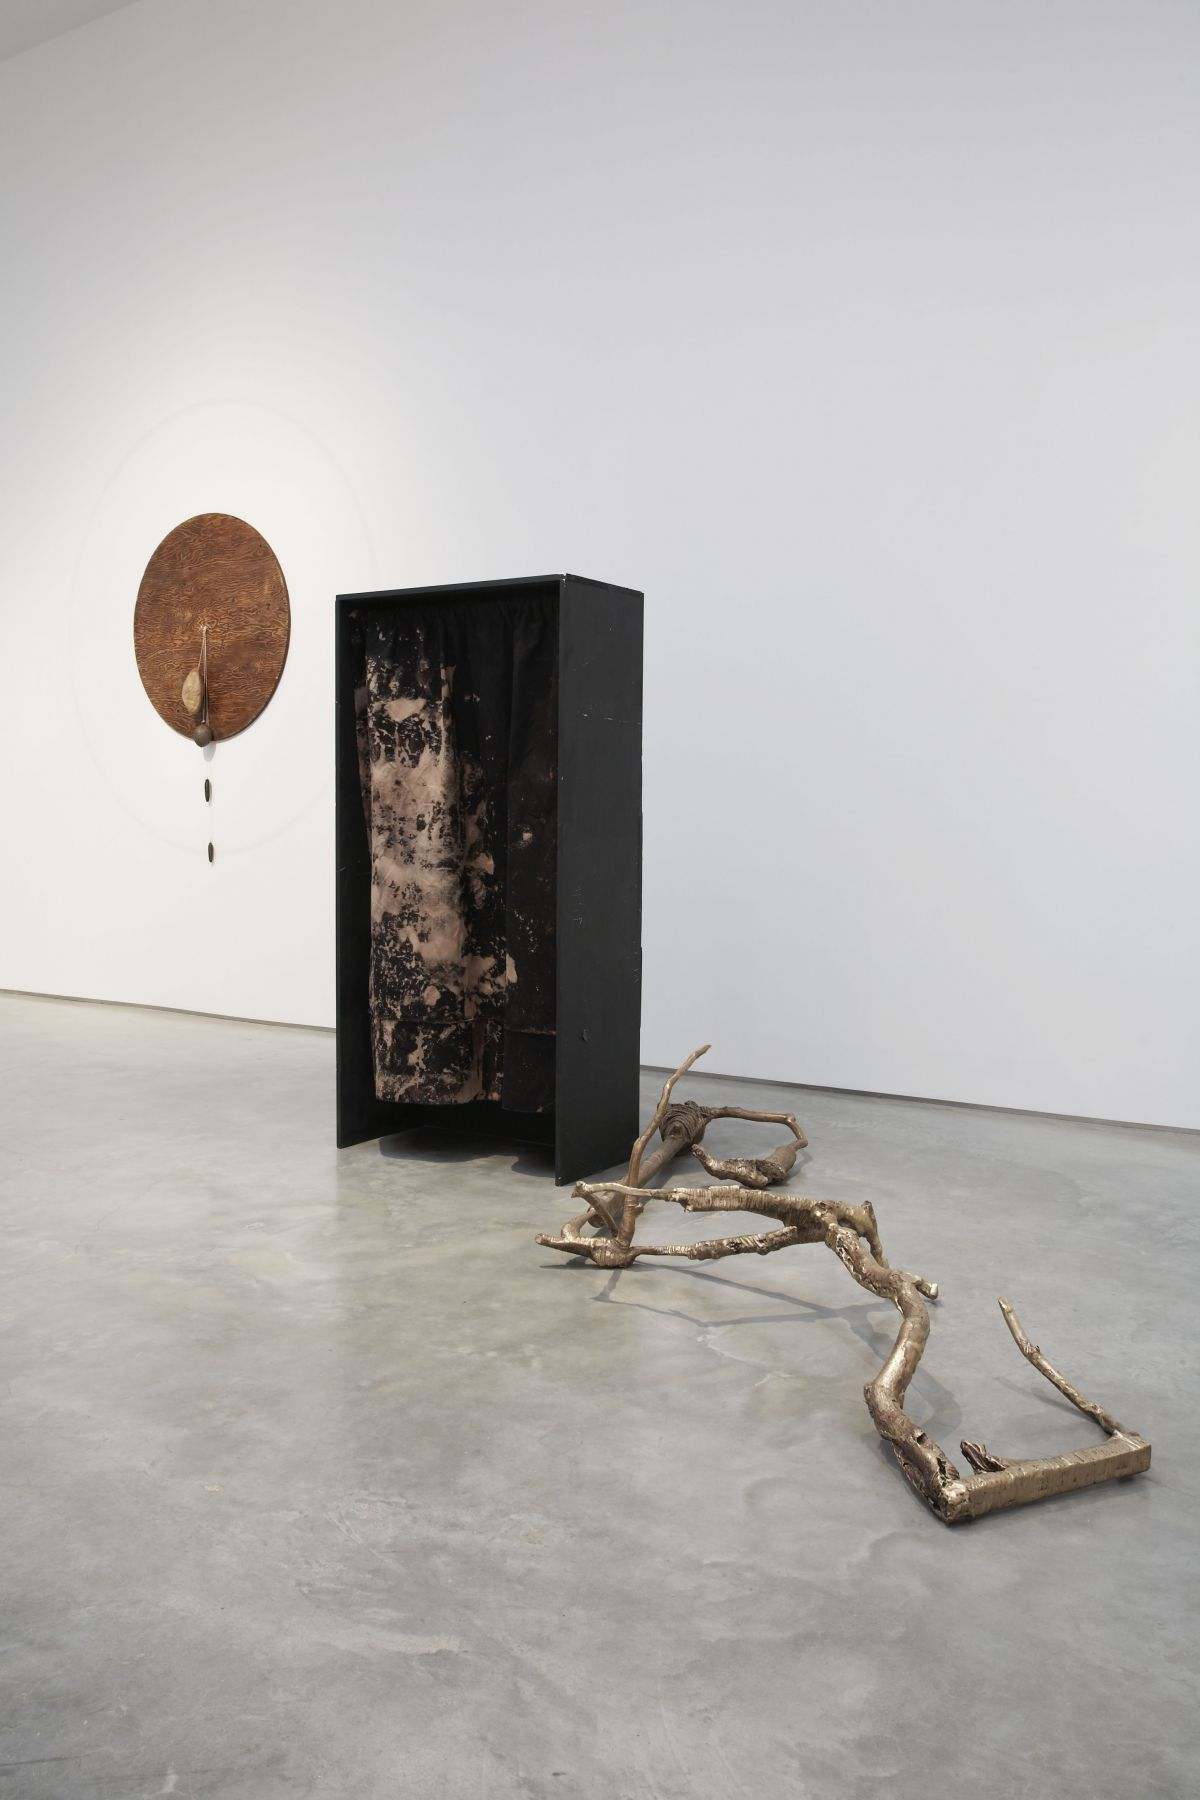 Jay Heikes (Installation View) , Marianne Boesky Gallery, 2007